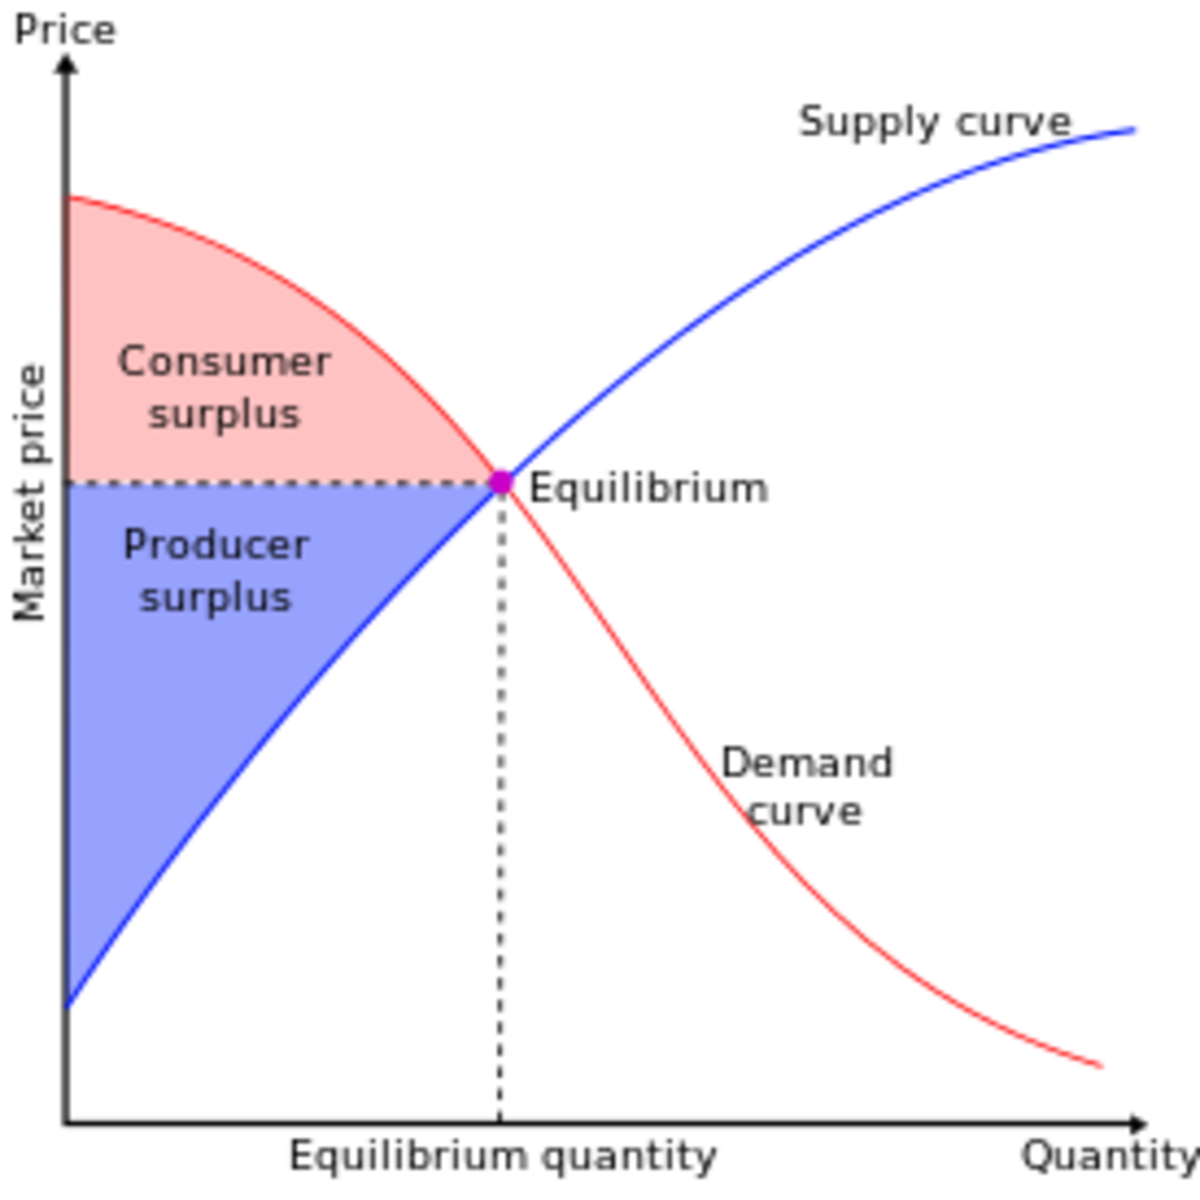 Theoretical and Practical Importance of Consumer's Surplus